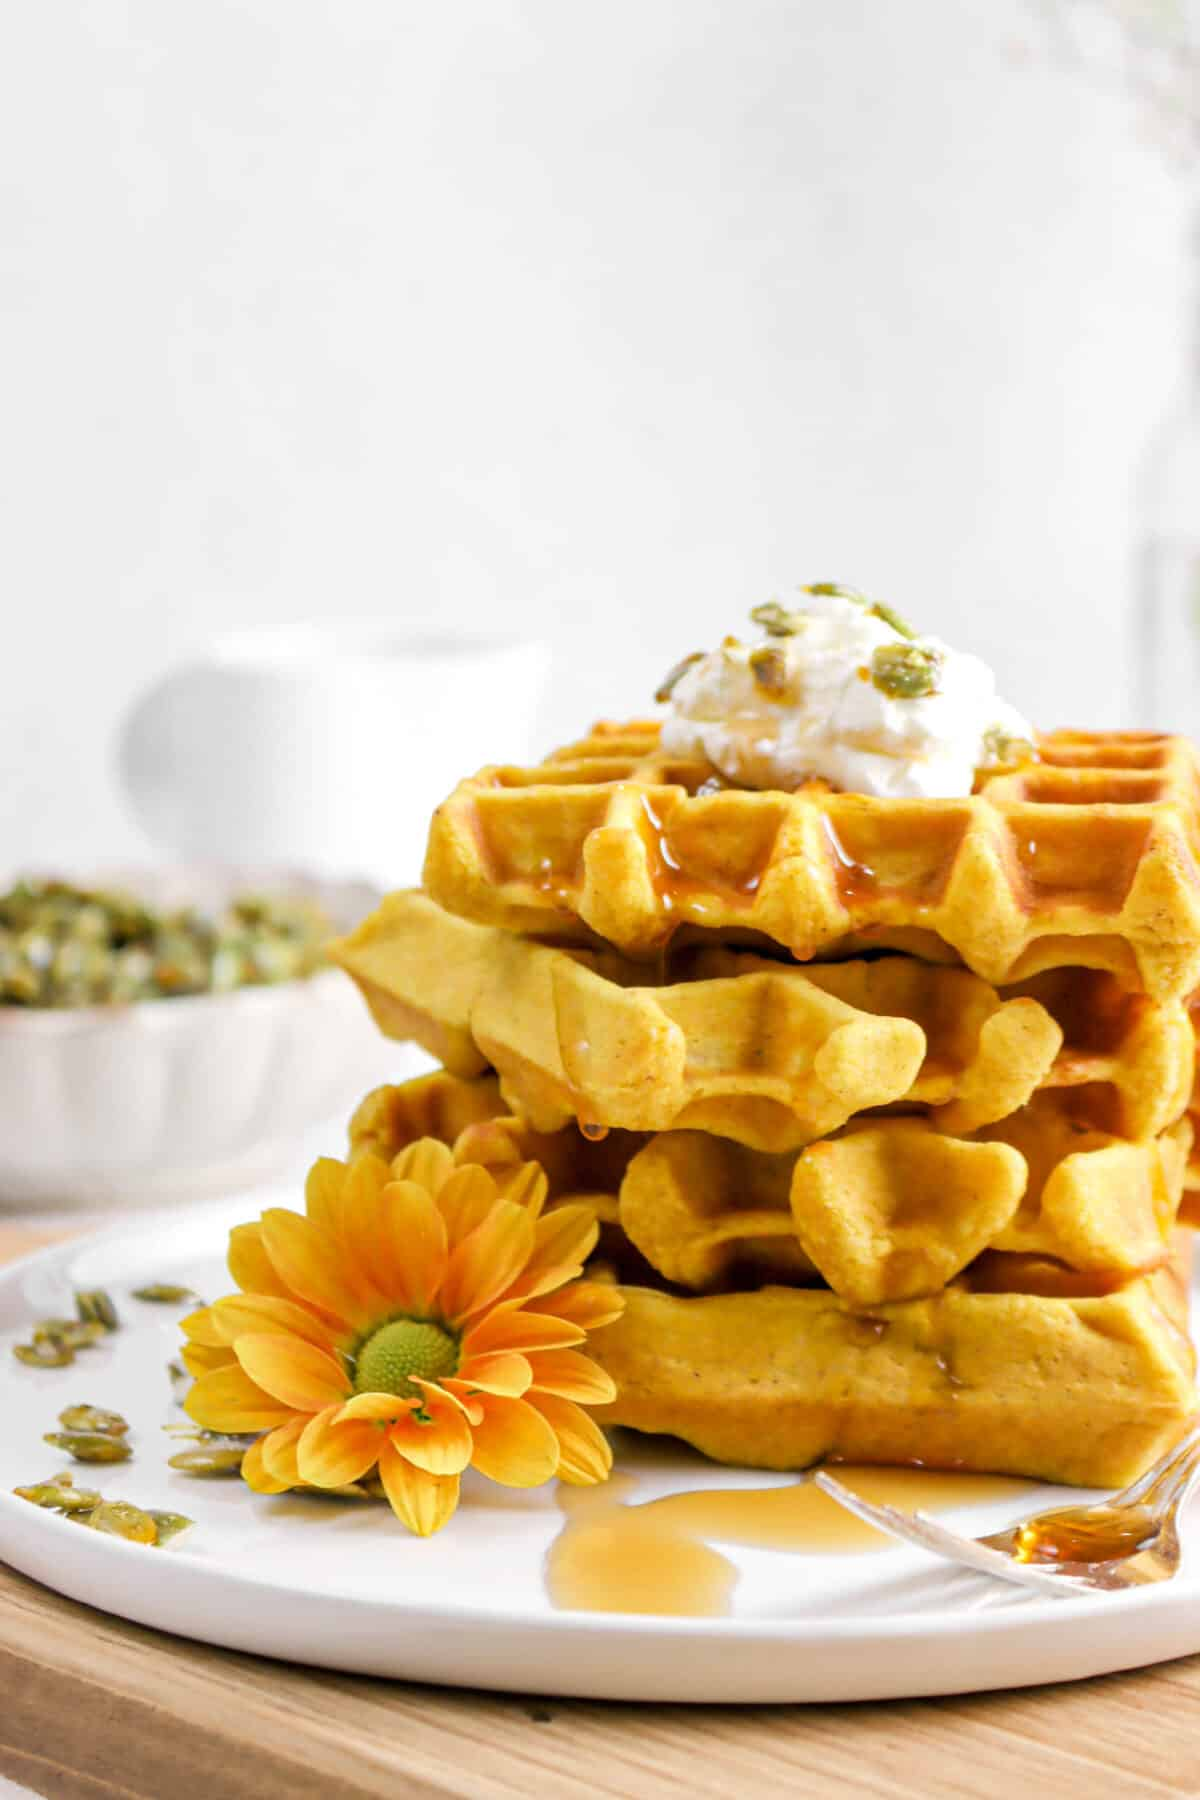 four stacked waffles with whipped cream on top, maple syrup, candied pumpkin seeds, and flowers